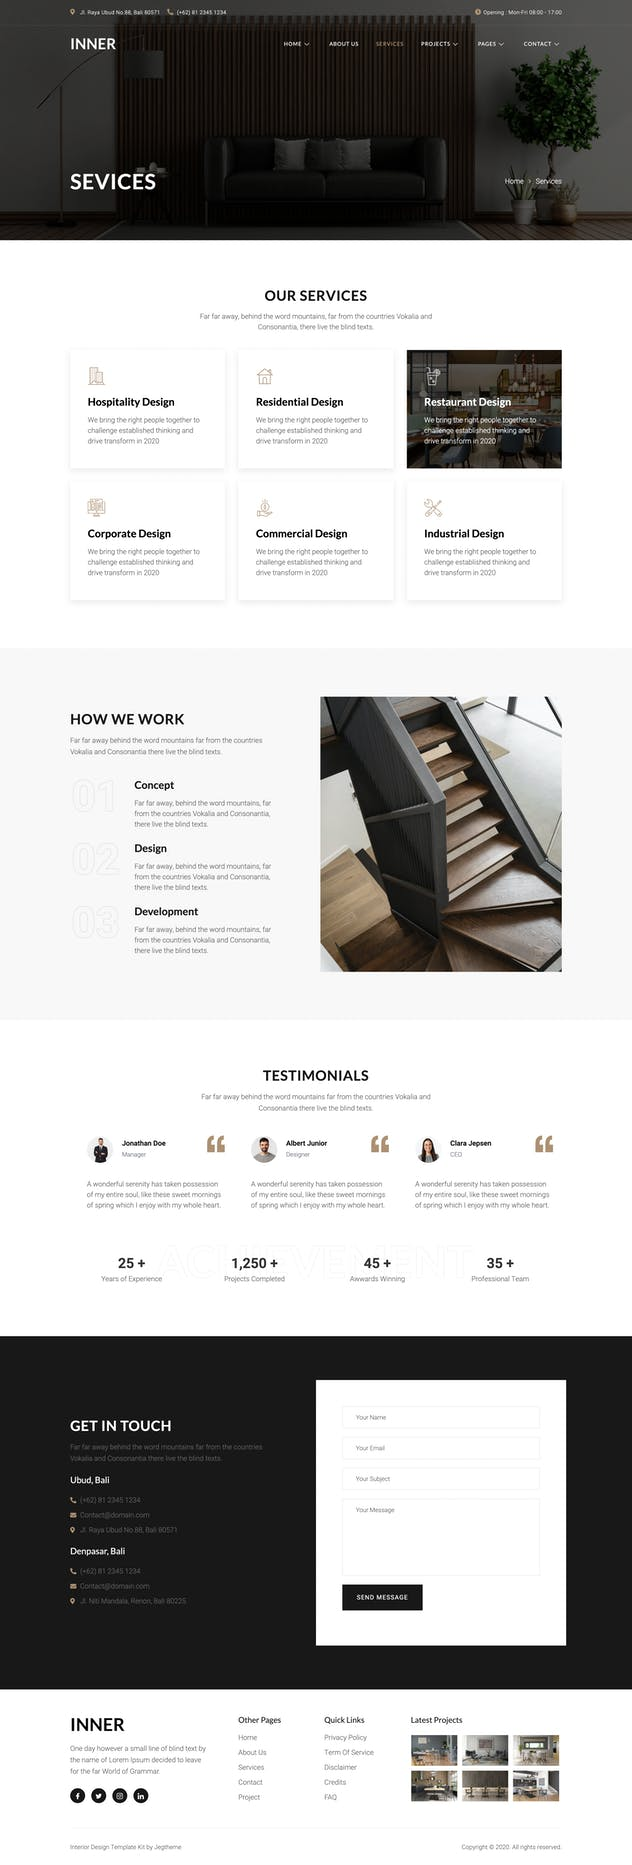 Inner – Interior Design & Architecture Template Kit - product preview 5